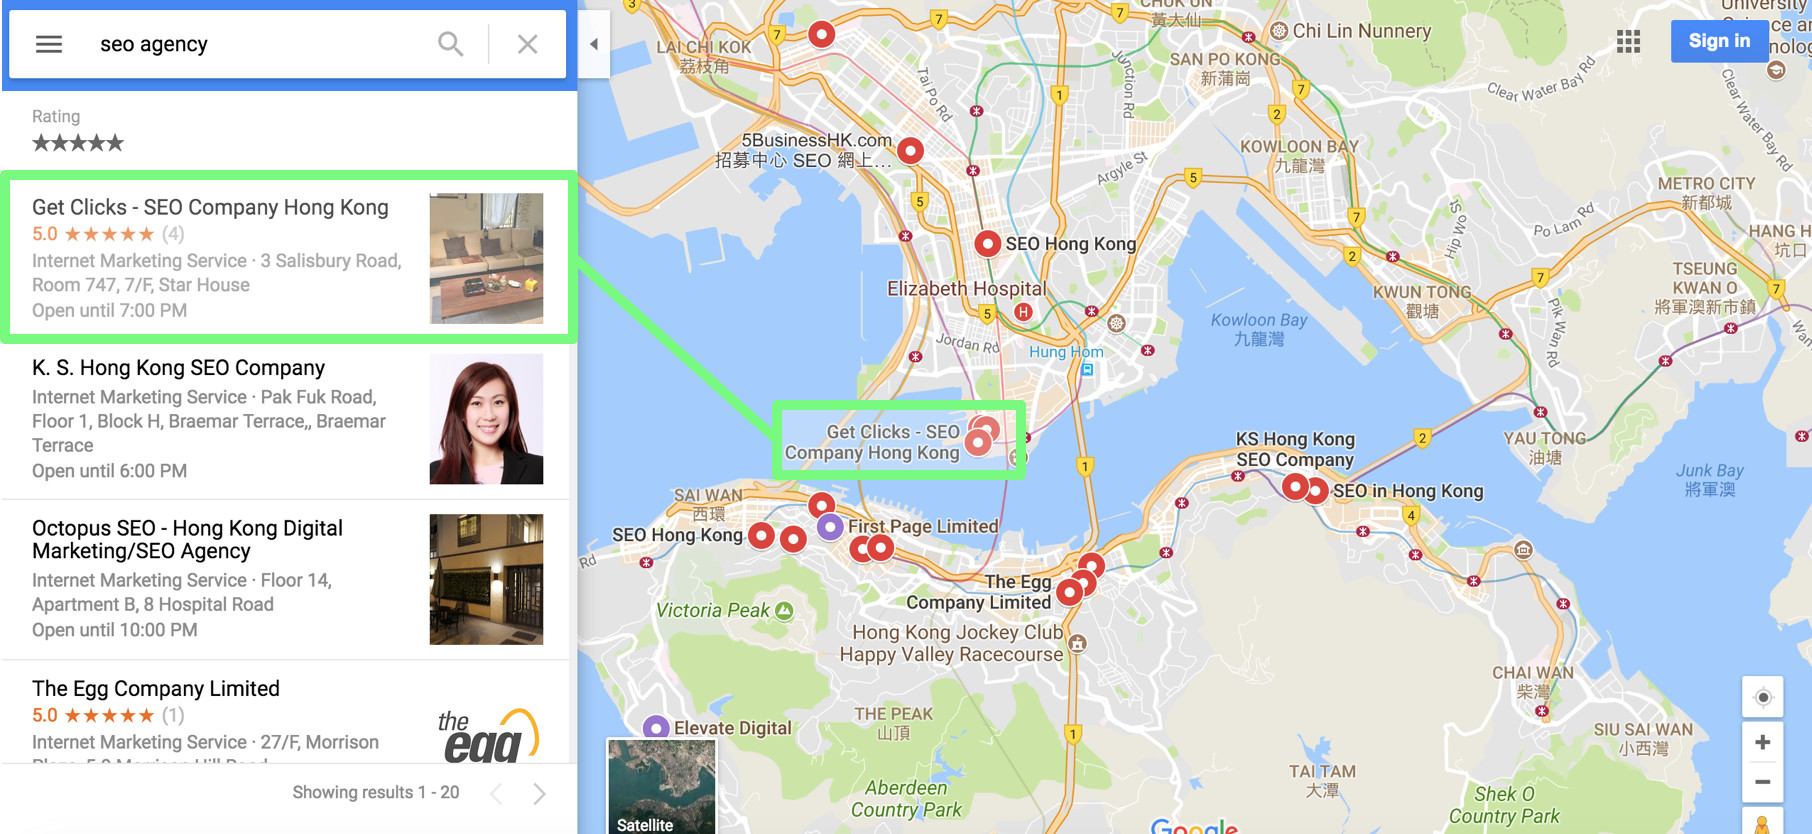 Google Maps SEO Services Hong Kong